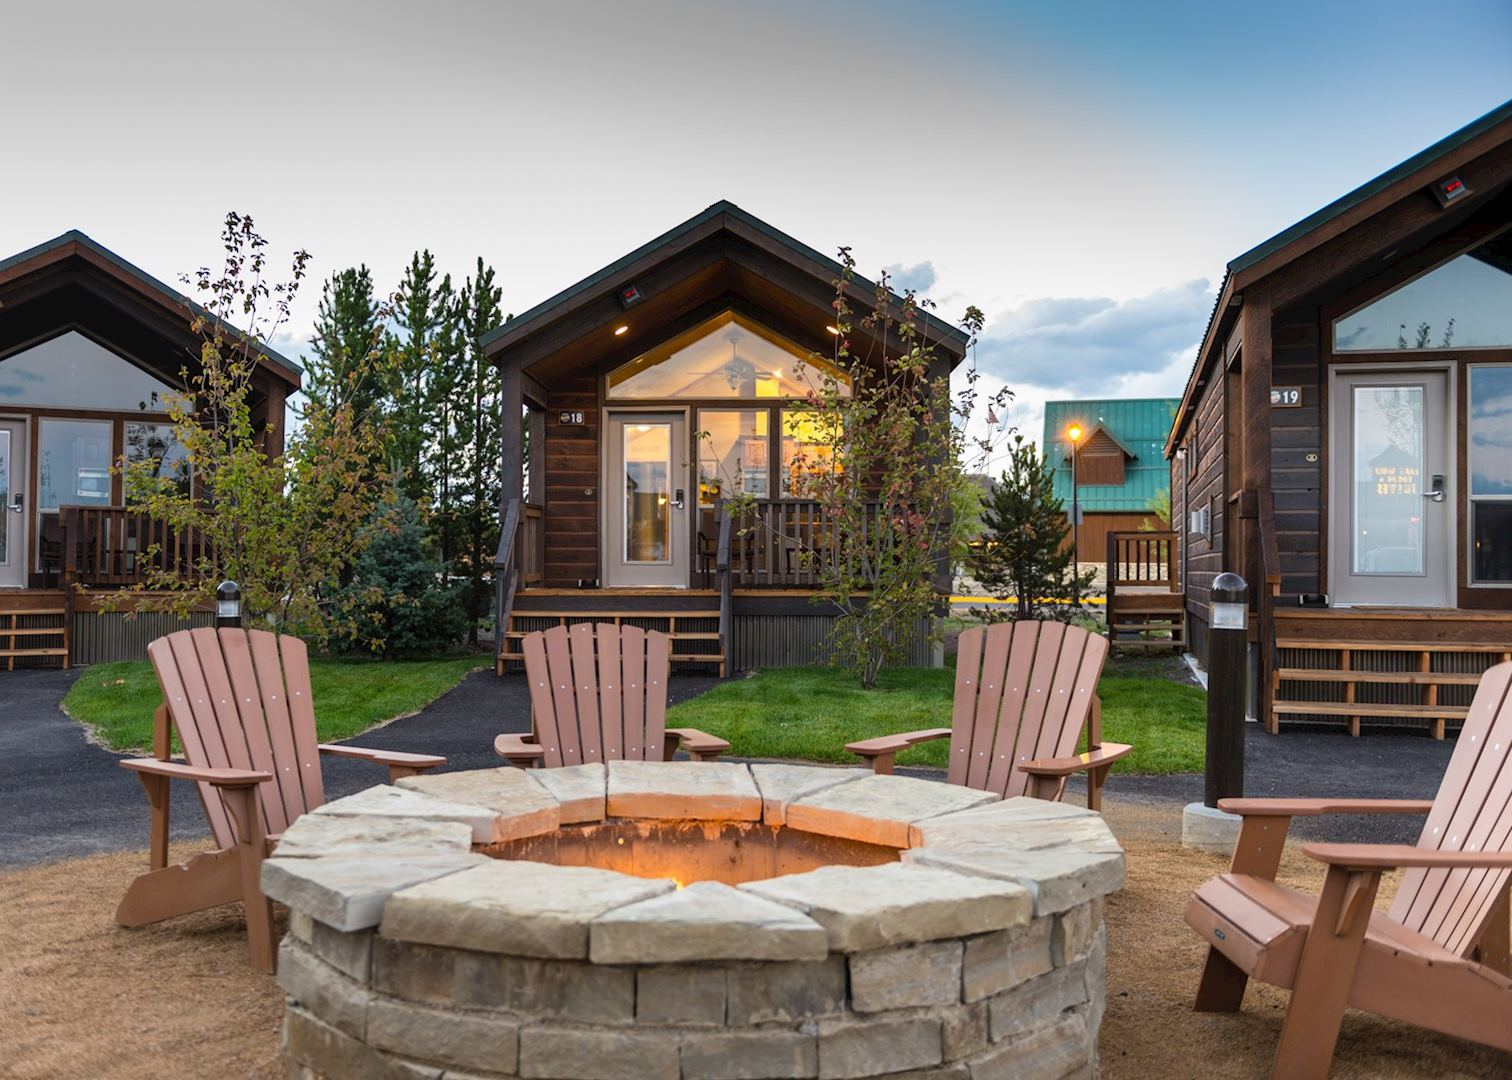 cabins mountainside montana camping campgrounds photos west deluxe yellowstone park room